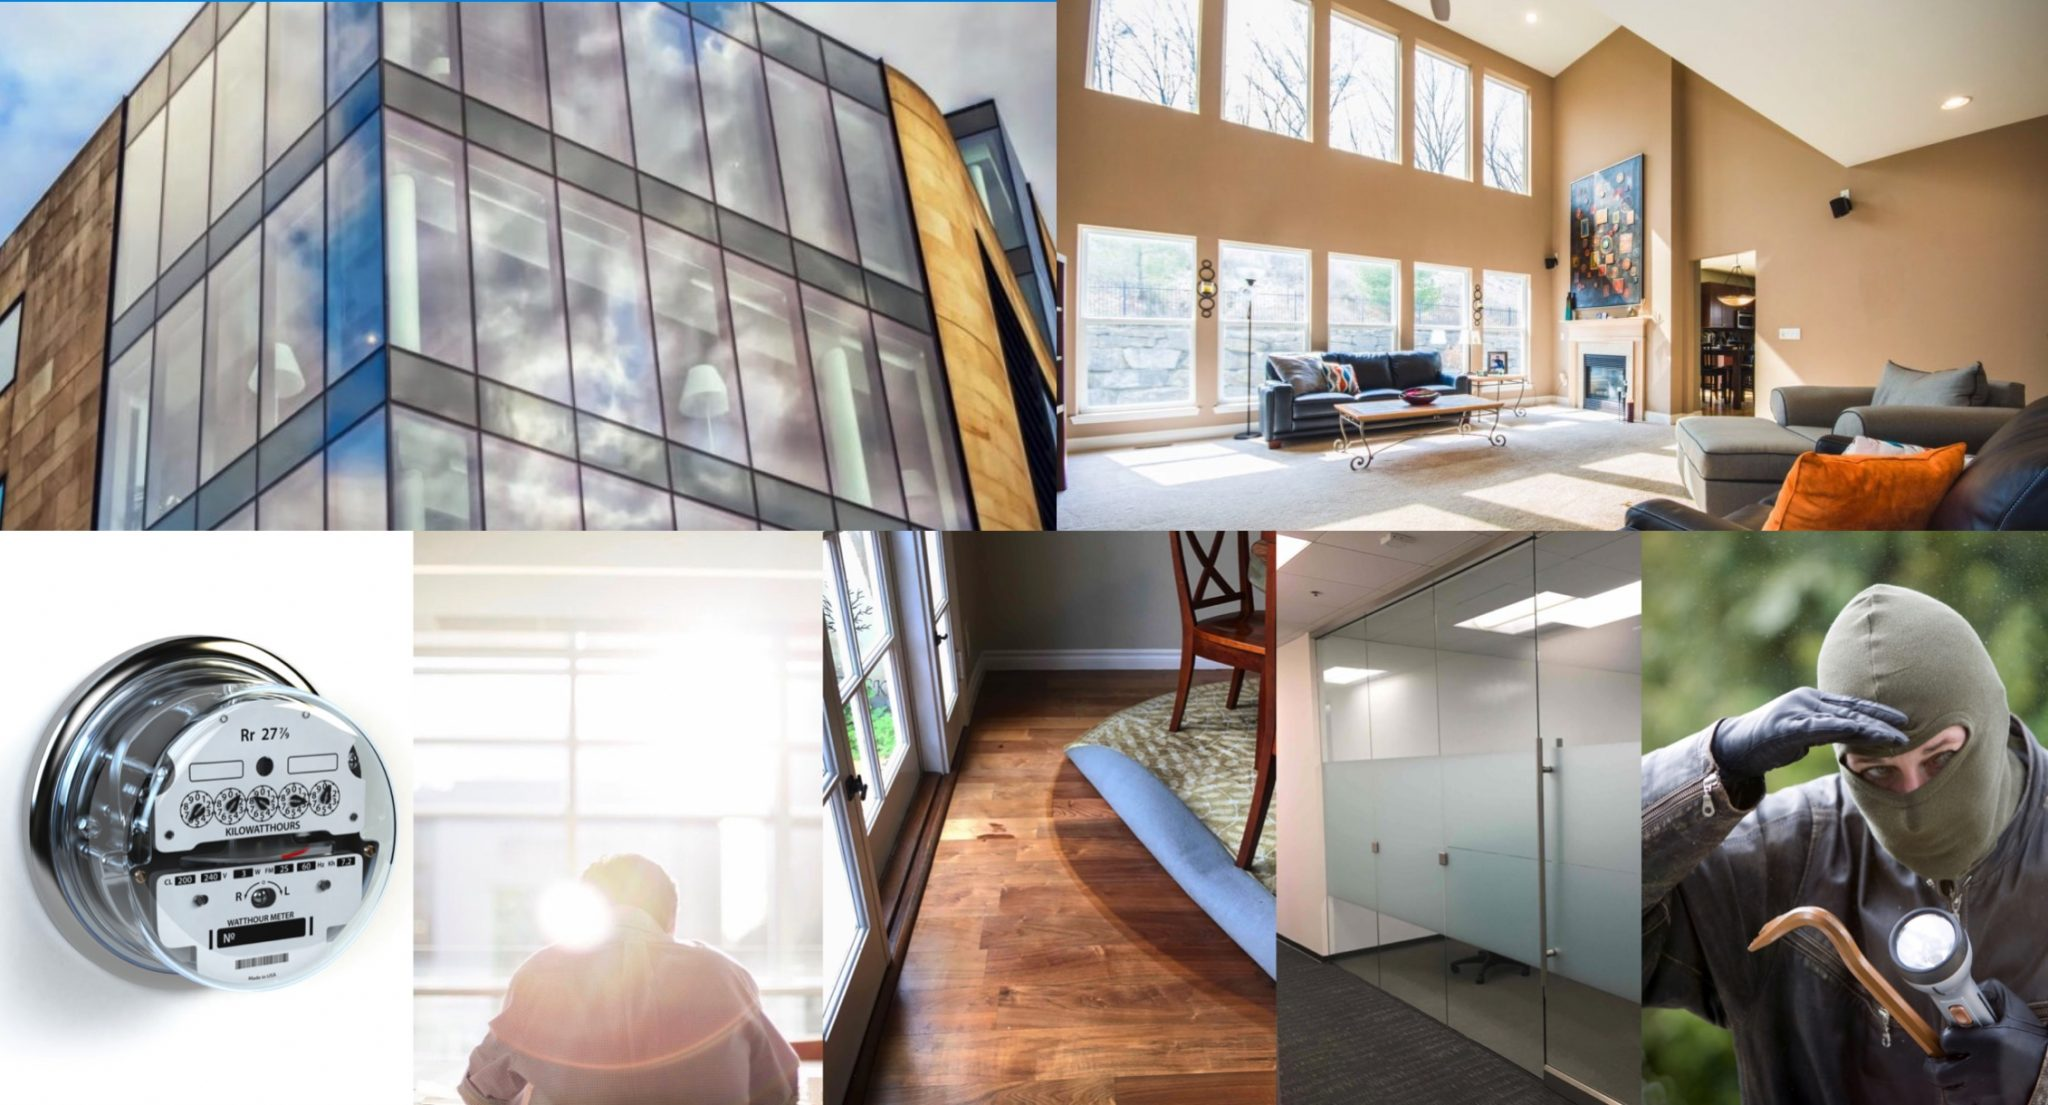 What are Window Films and How Can They Be Used? - Window Tinting in Tulsa, Oklahoma and the surrounding areas.